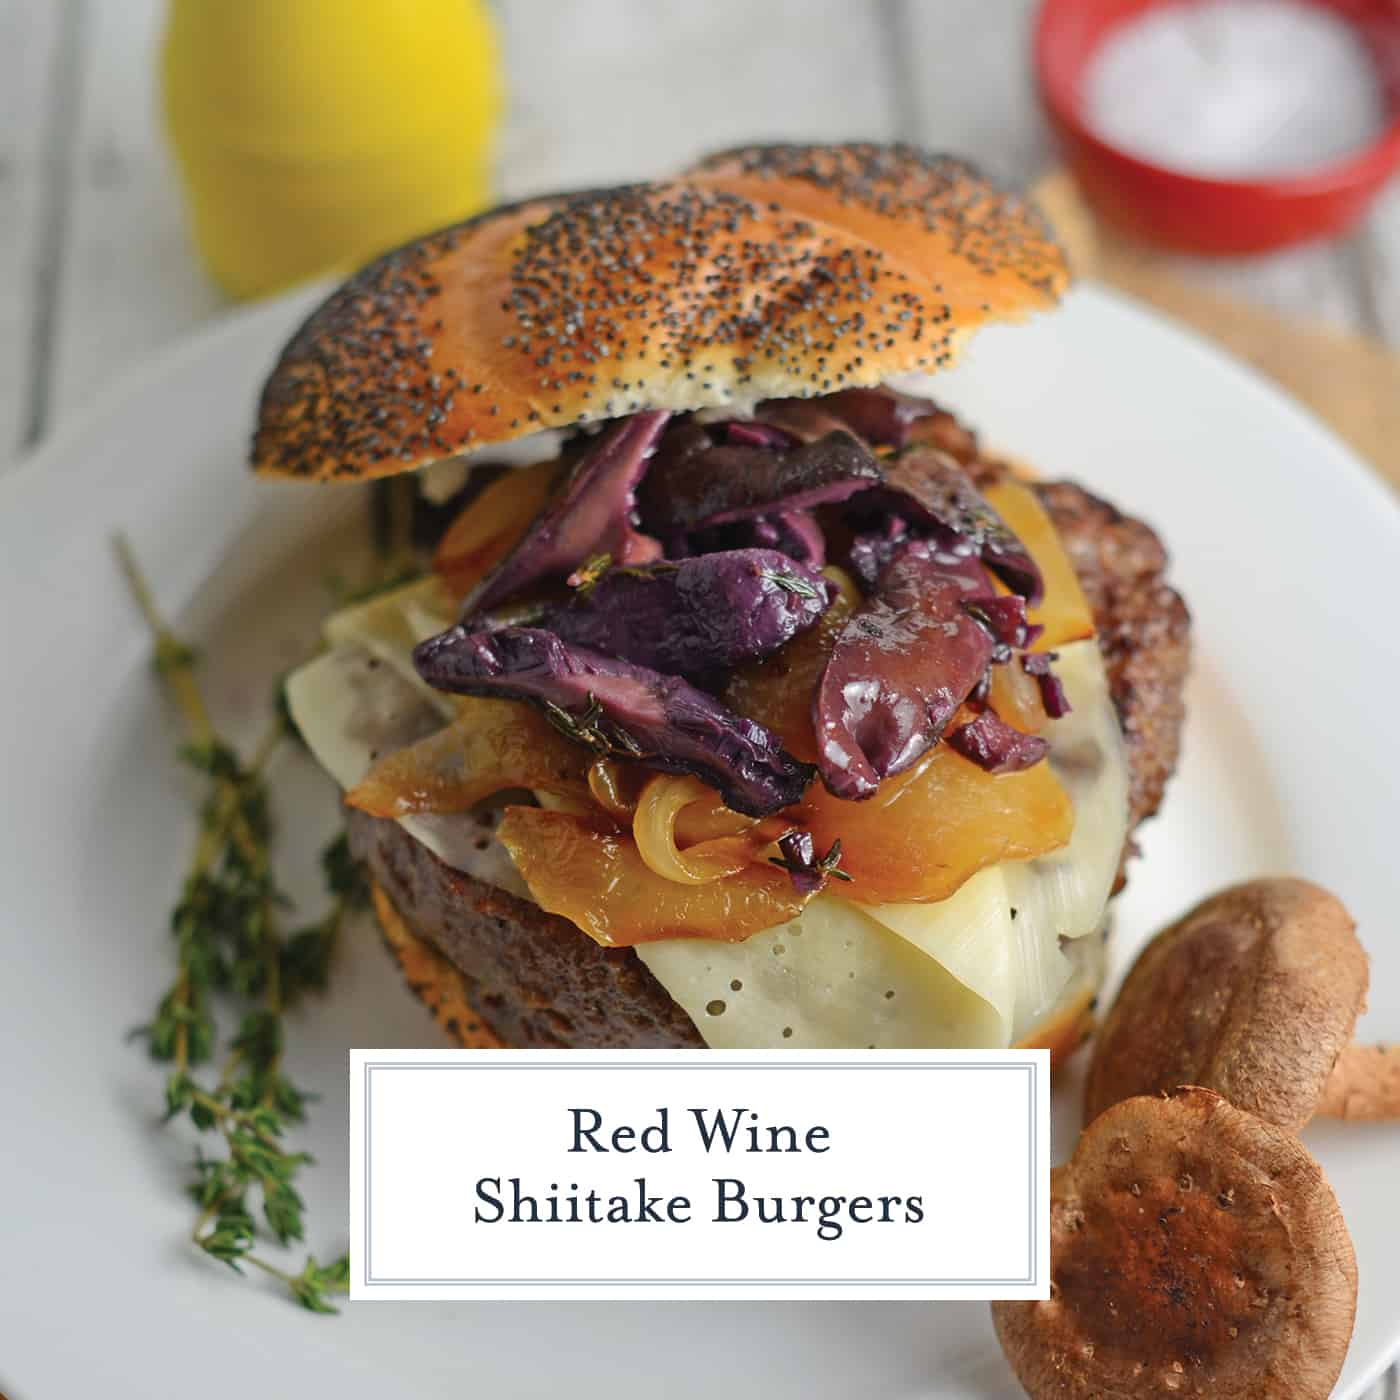 This Red Wine Shiitake Hamburger takes your typical burger recipes and turns it into so much more! The perfect artisan hamburger to enjoy at home! #burgerrecipes #recipeswithhamburgermeat www.savoryexperiments.com